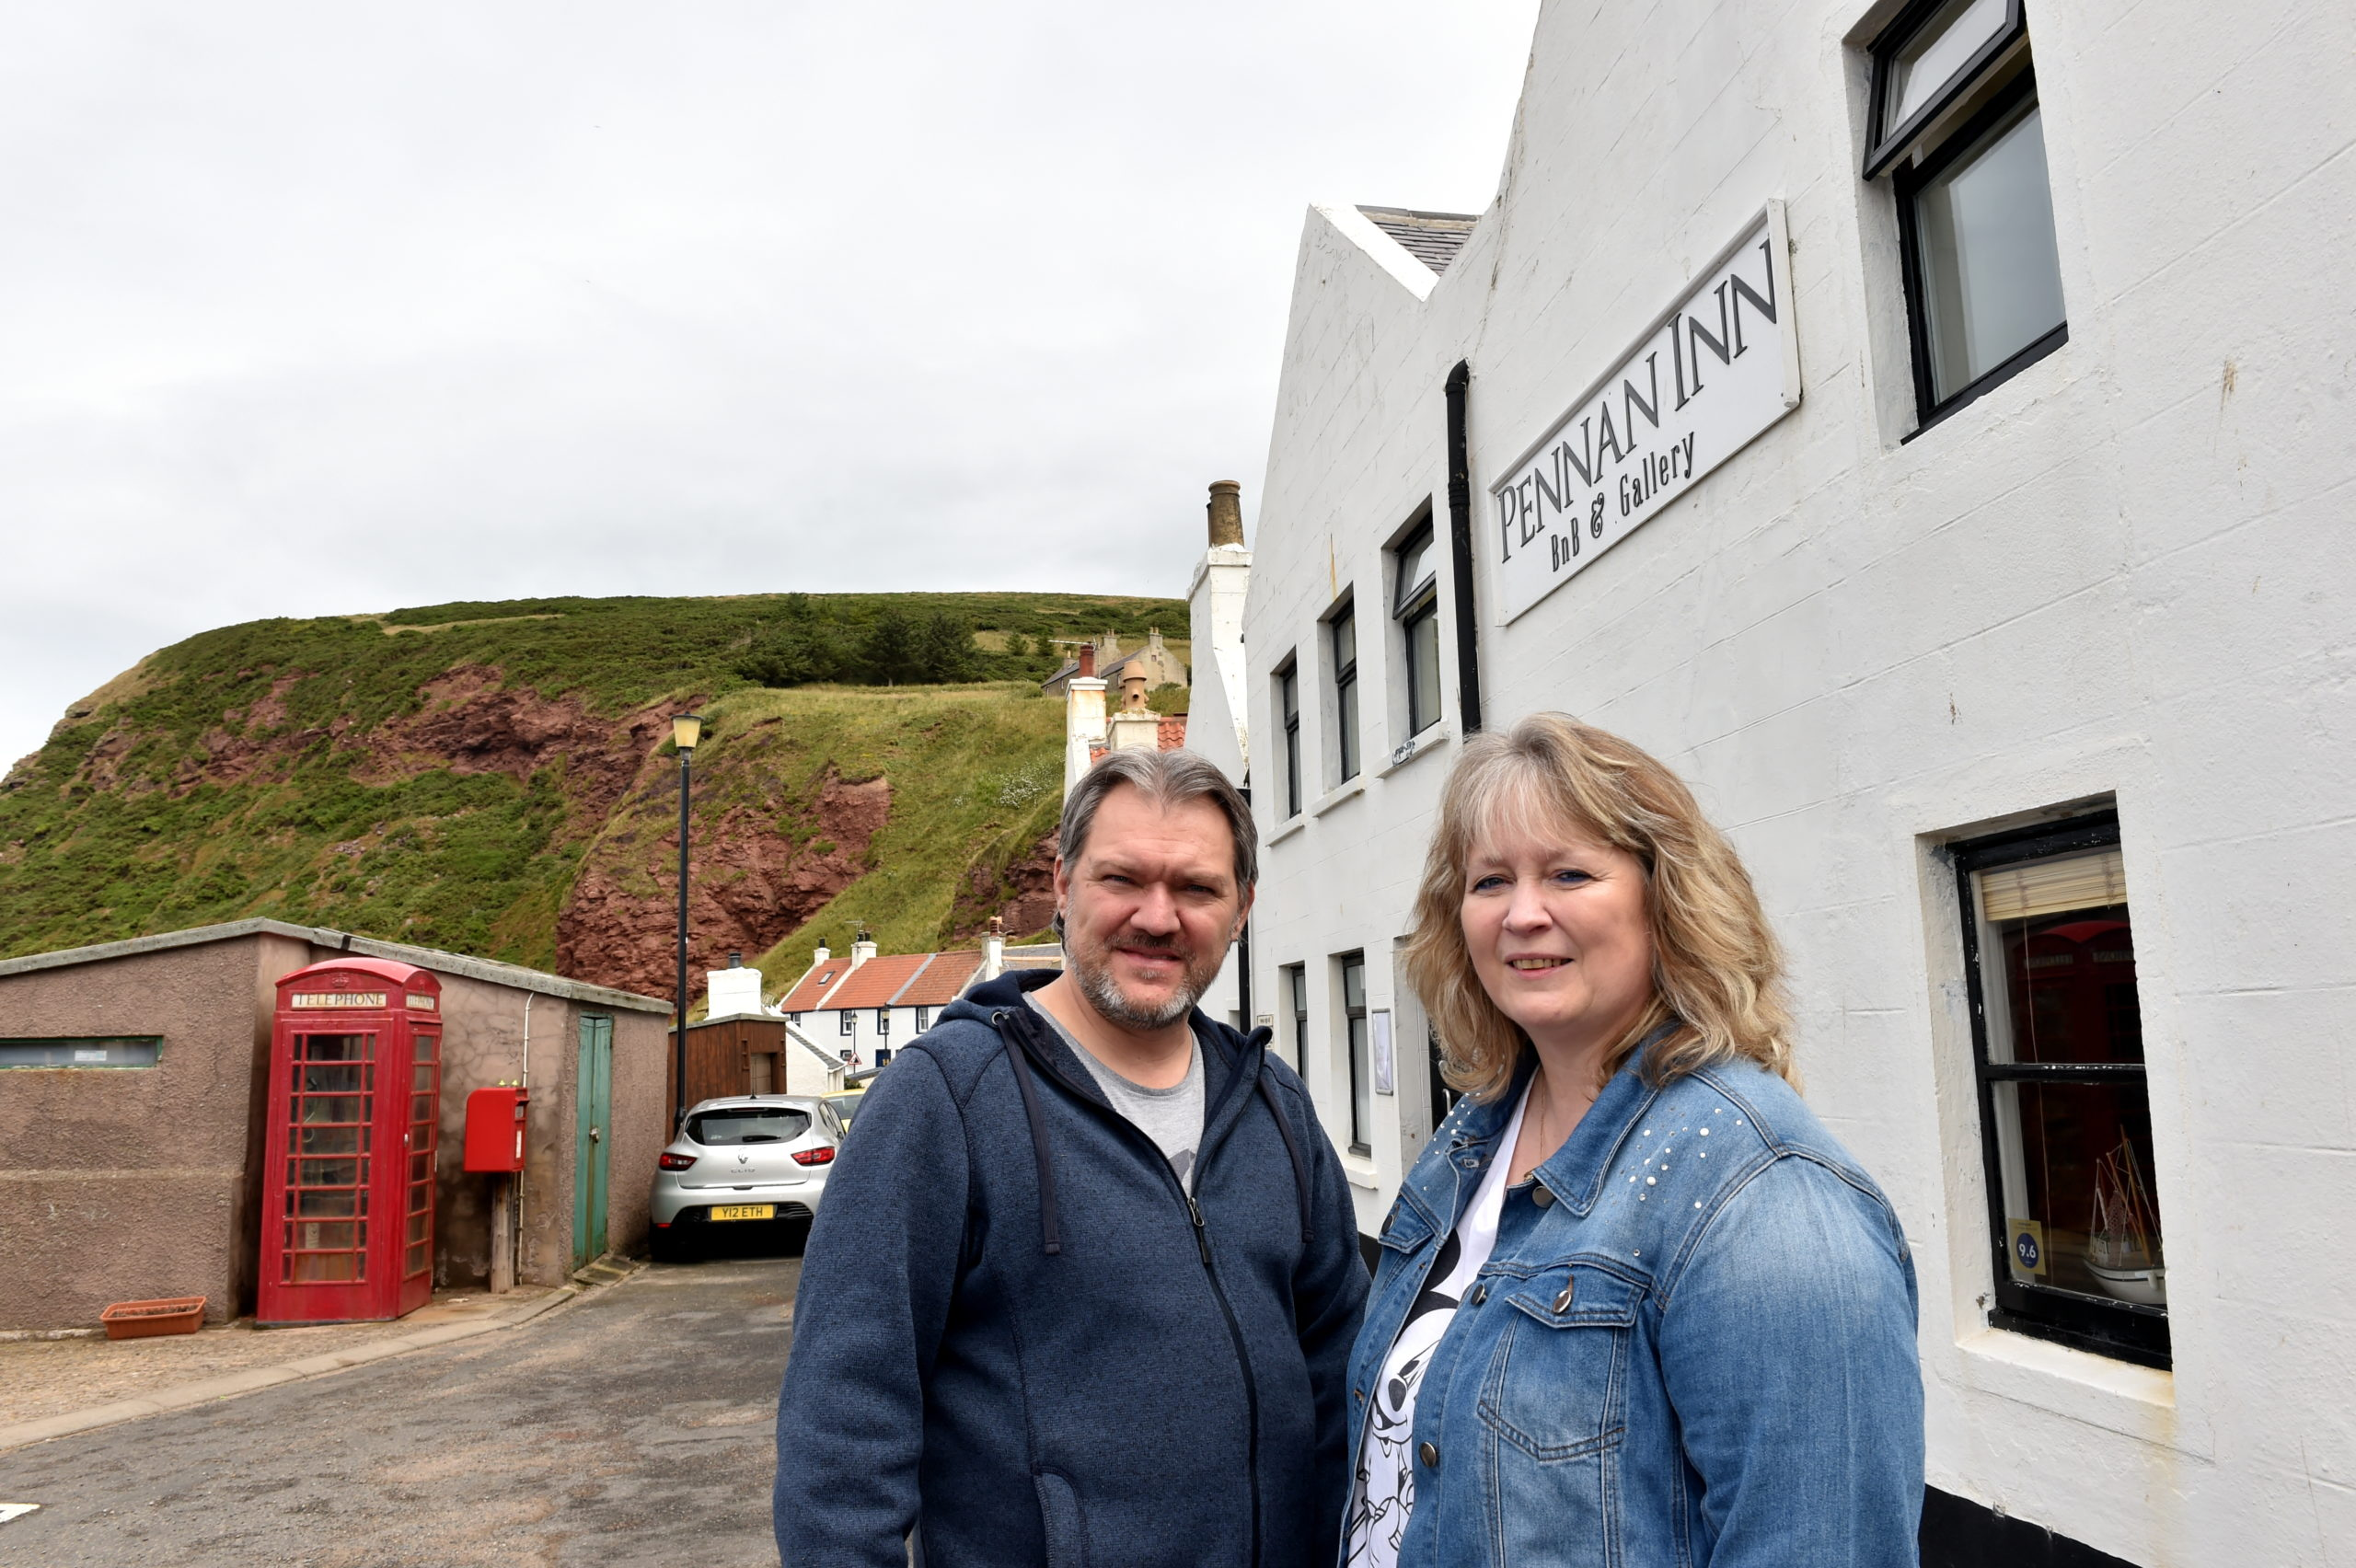 New owners of the Pennan Inn, Roland and Monika Focht. Picture by Kami Thomson